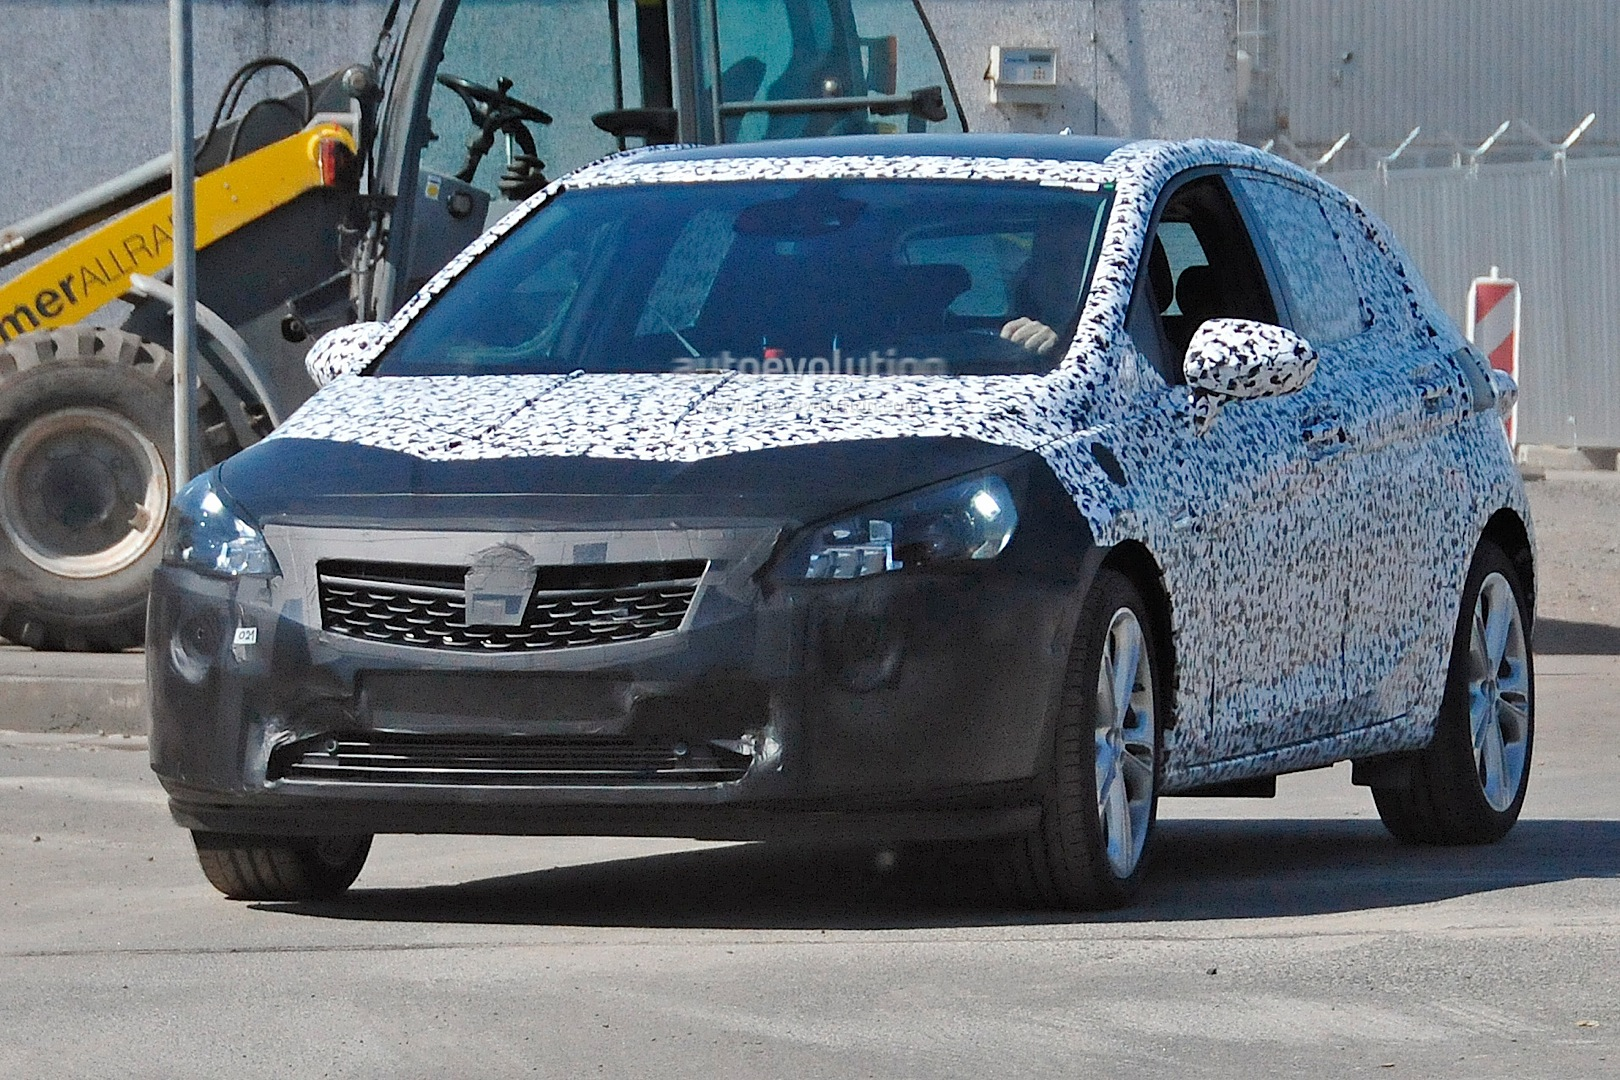 [2015] Opel ASTRA K New-opel-astra-k-7th-generation-spied-in-detail-photo-gallery_2